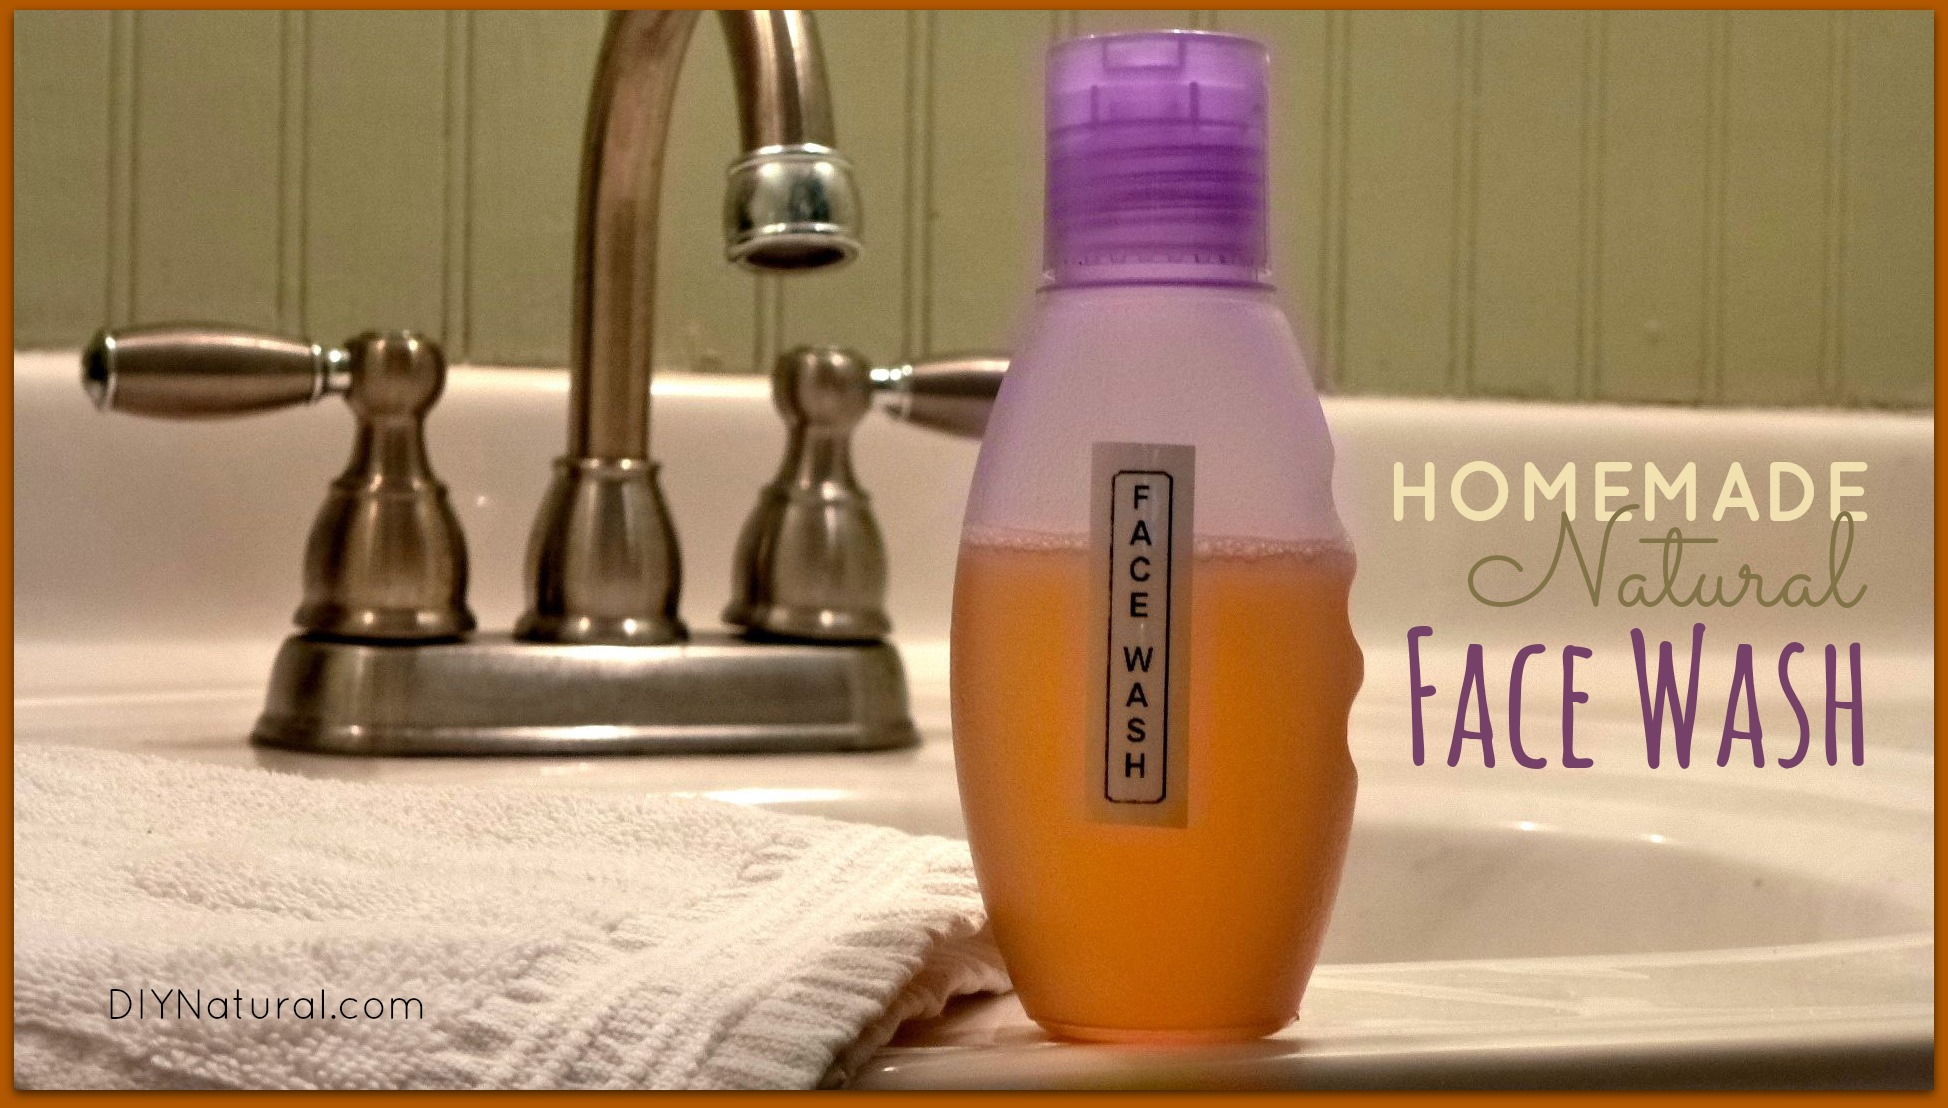 Homemade DIY Face Wash